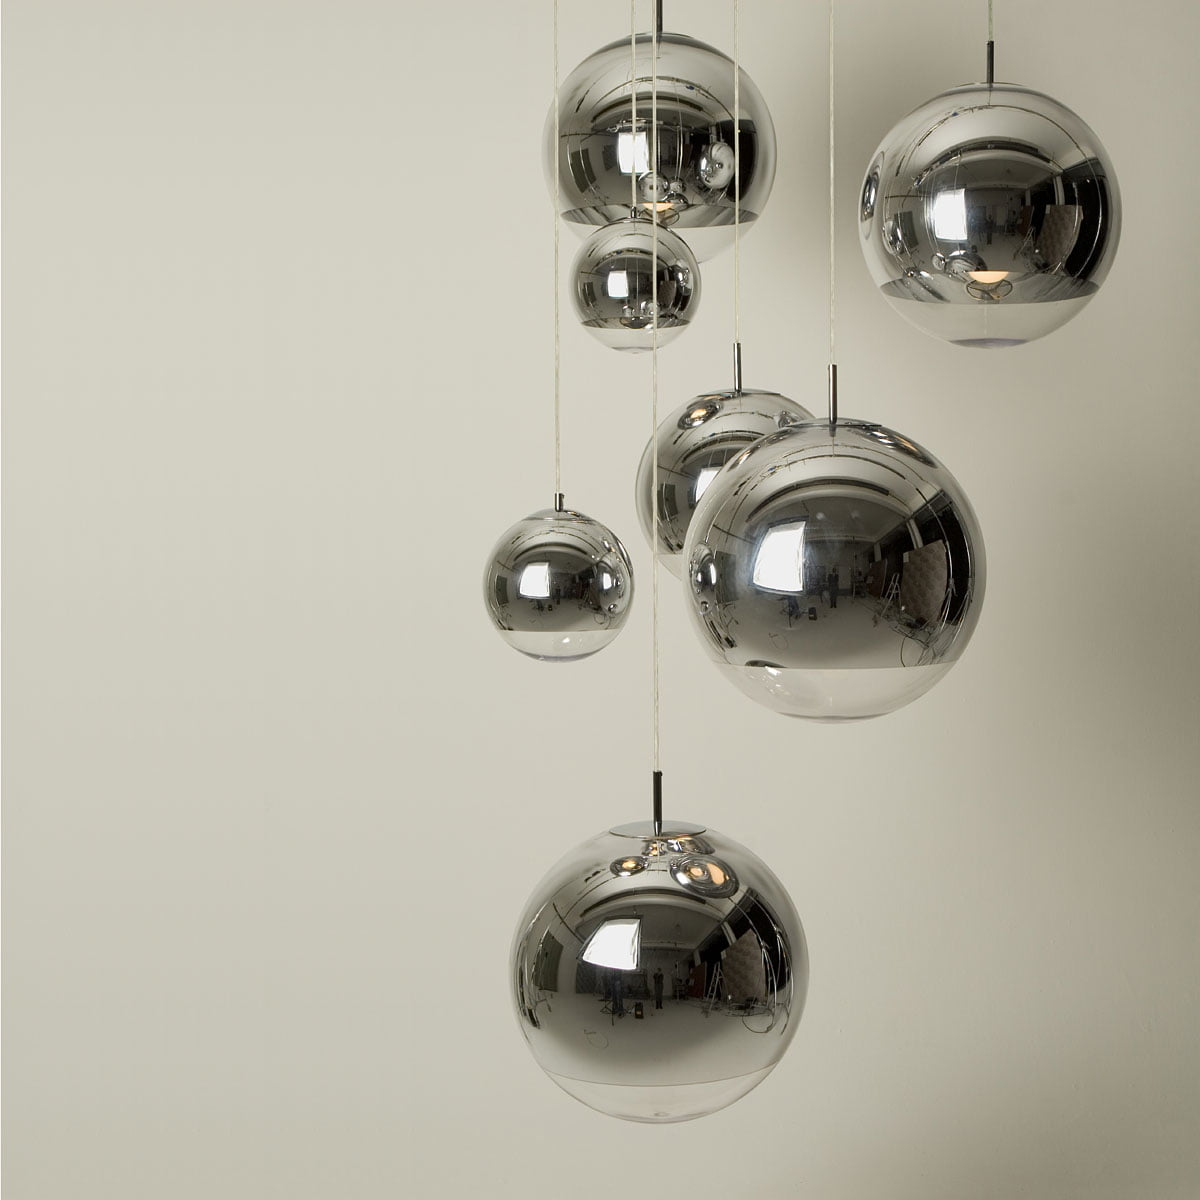 mirror ball pendant lamp by tom dixon. Black Bedroom Furniture Sets. Home Design Ideas